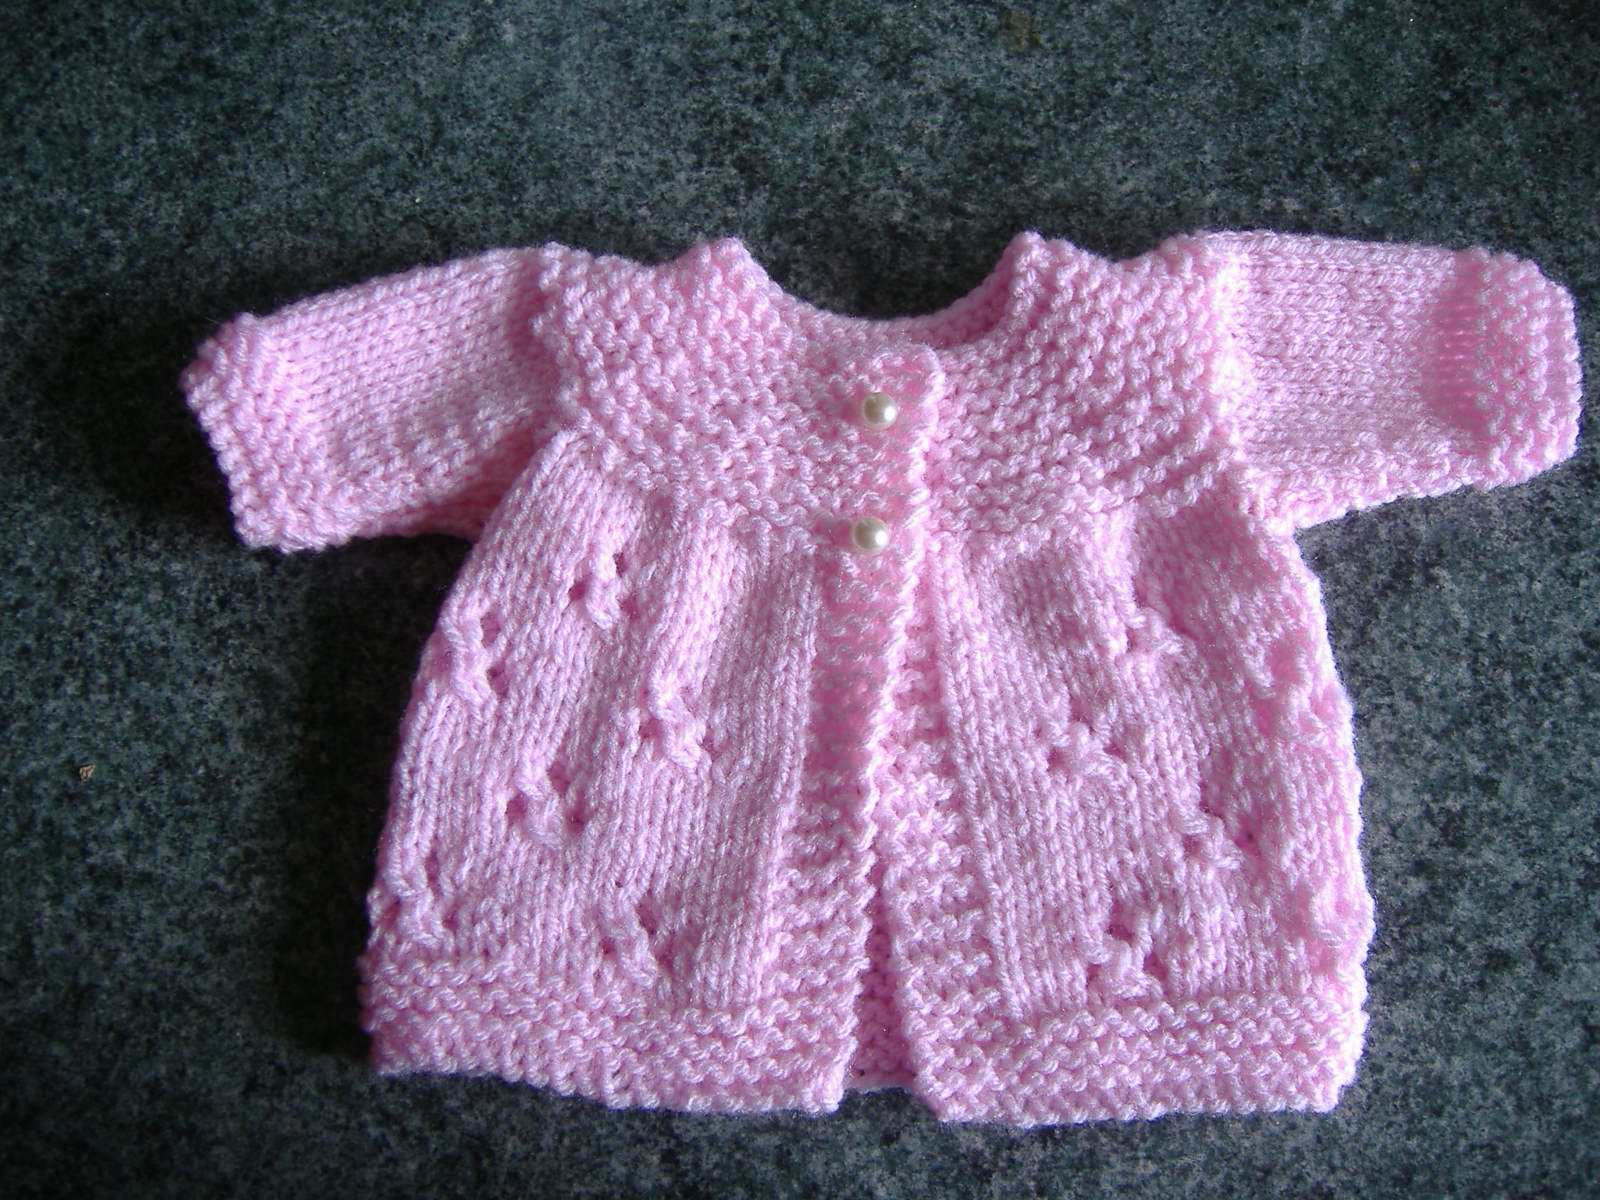 Knitting Patterns For Very Premature Babies : mariannas lazy daisy days: Premature Baby Jackets